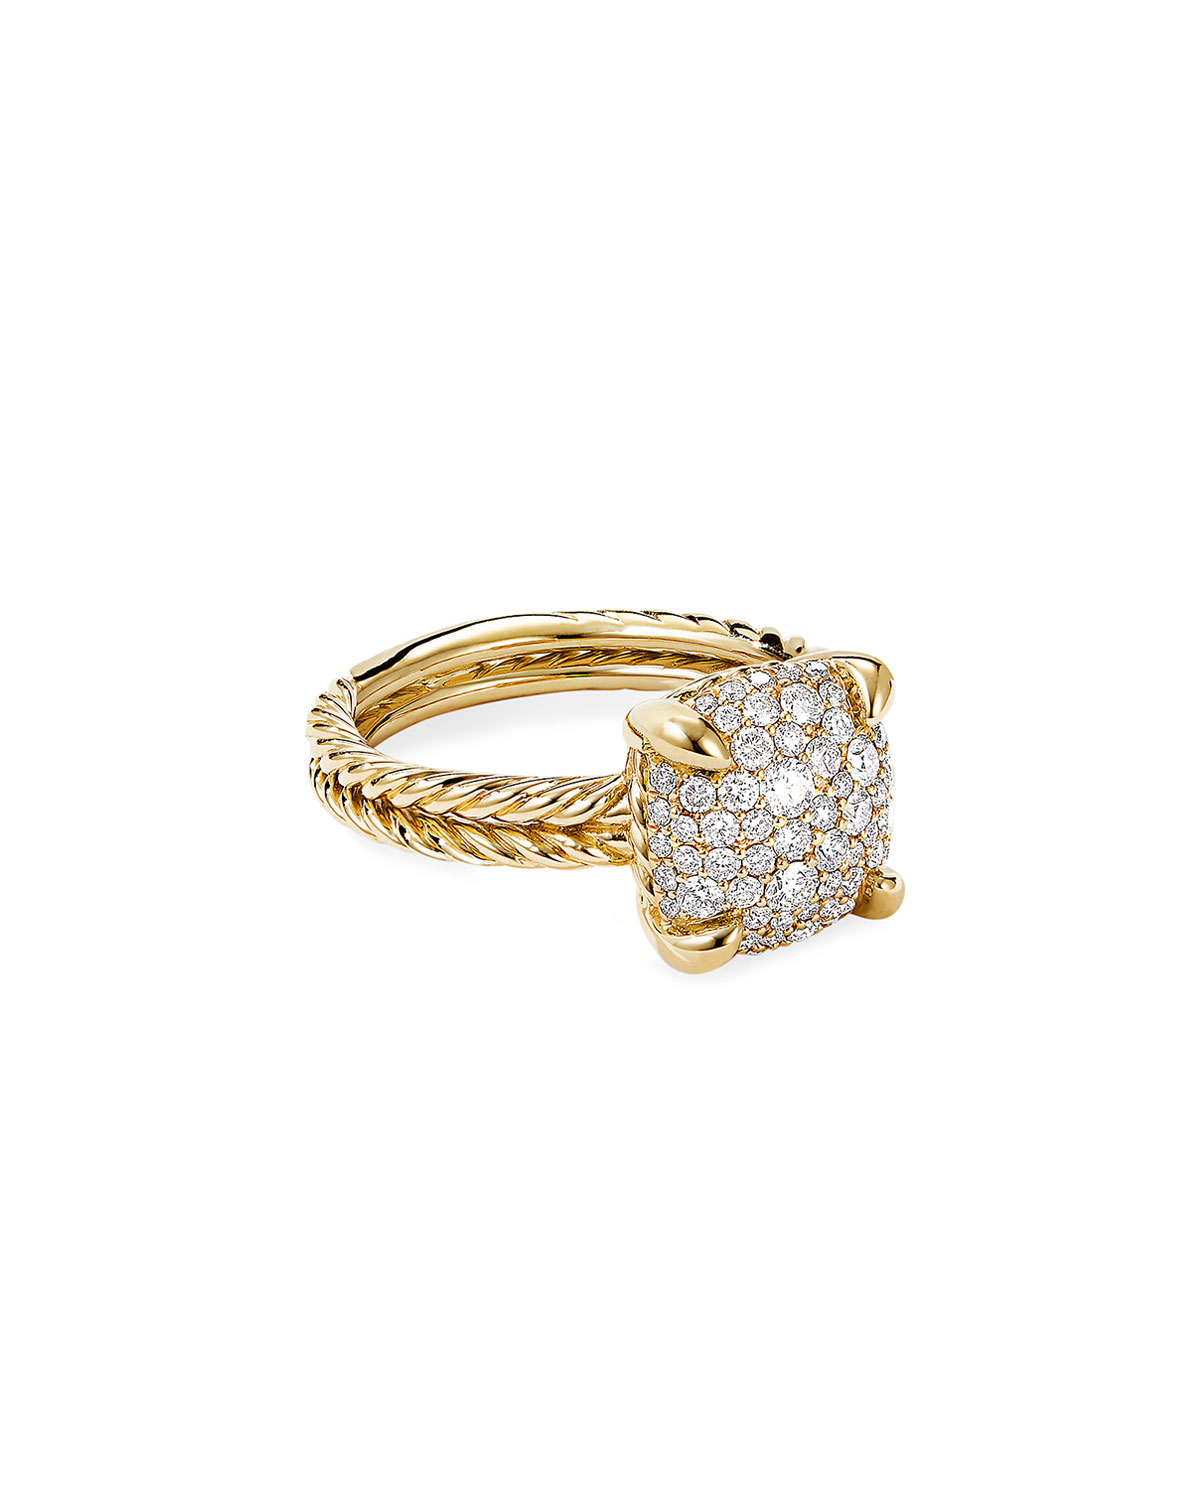 David Yurman Chatelaine Ring in 18K Yellow Gold with Full Pave Diamonds, 11mm, Size 6